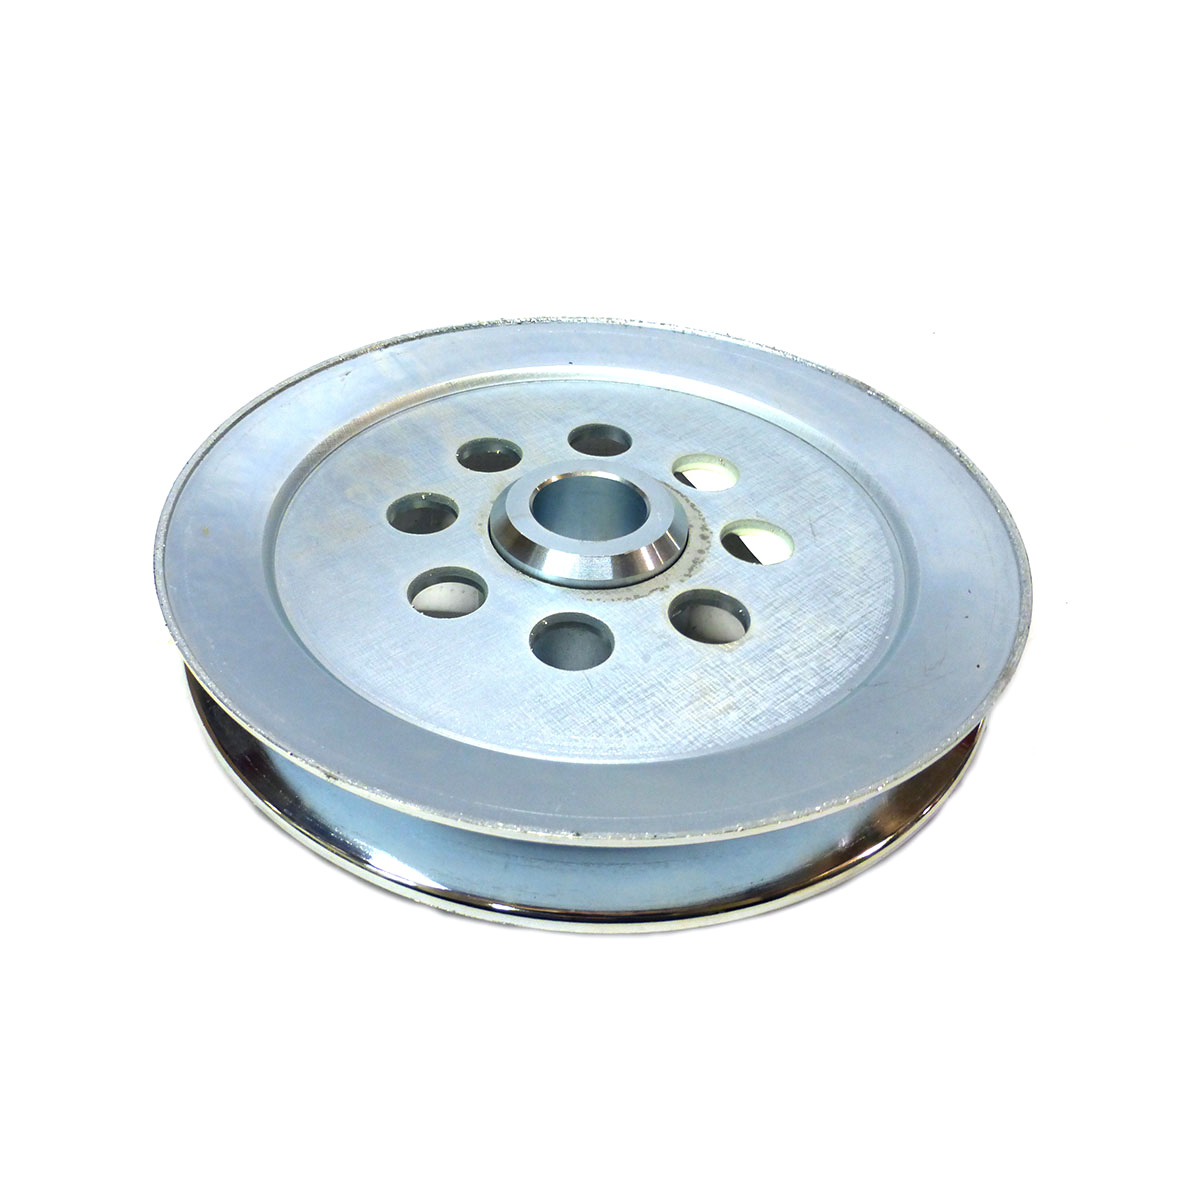 9907675X100S Dixie Chopper Split Pulley 6.75